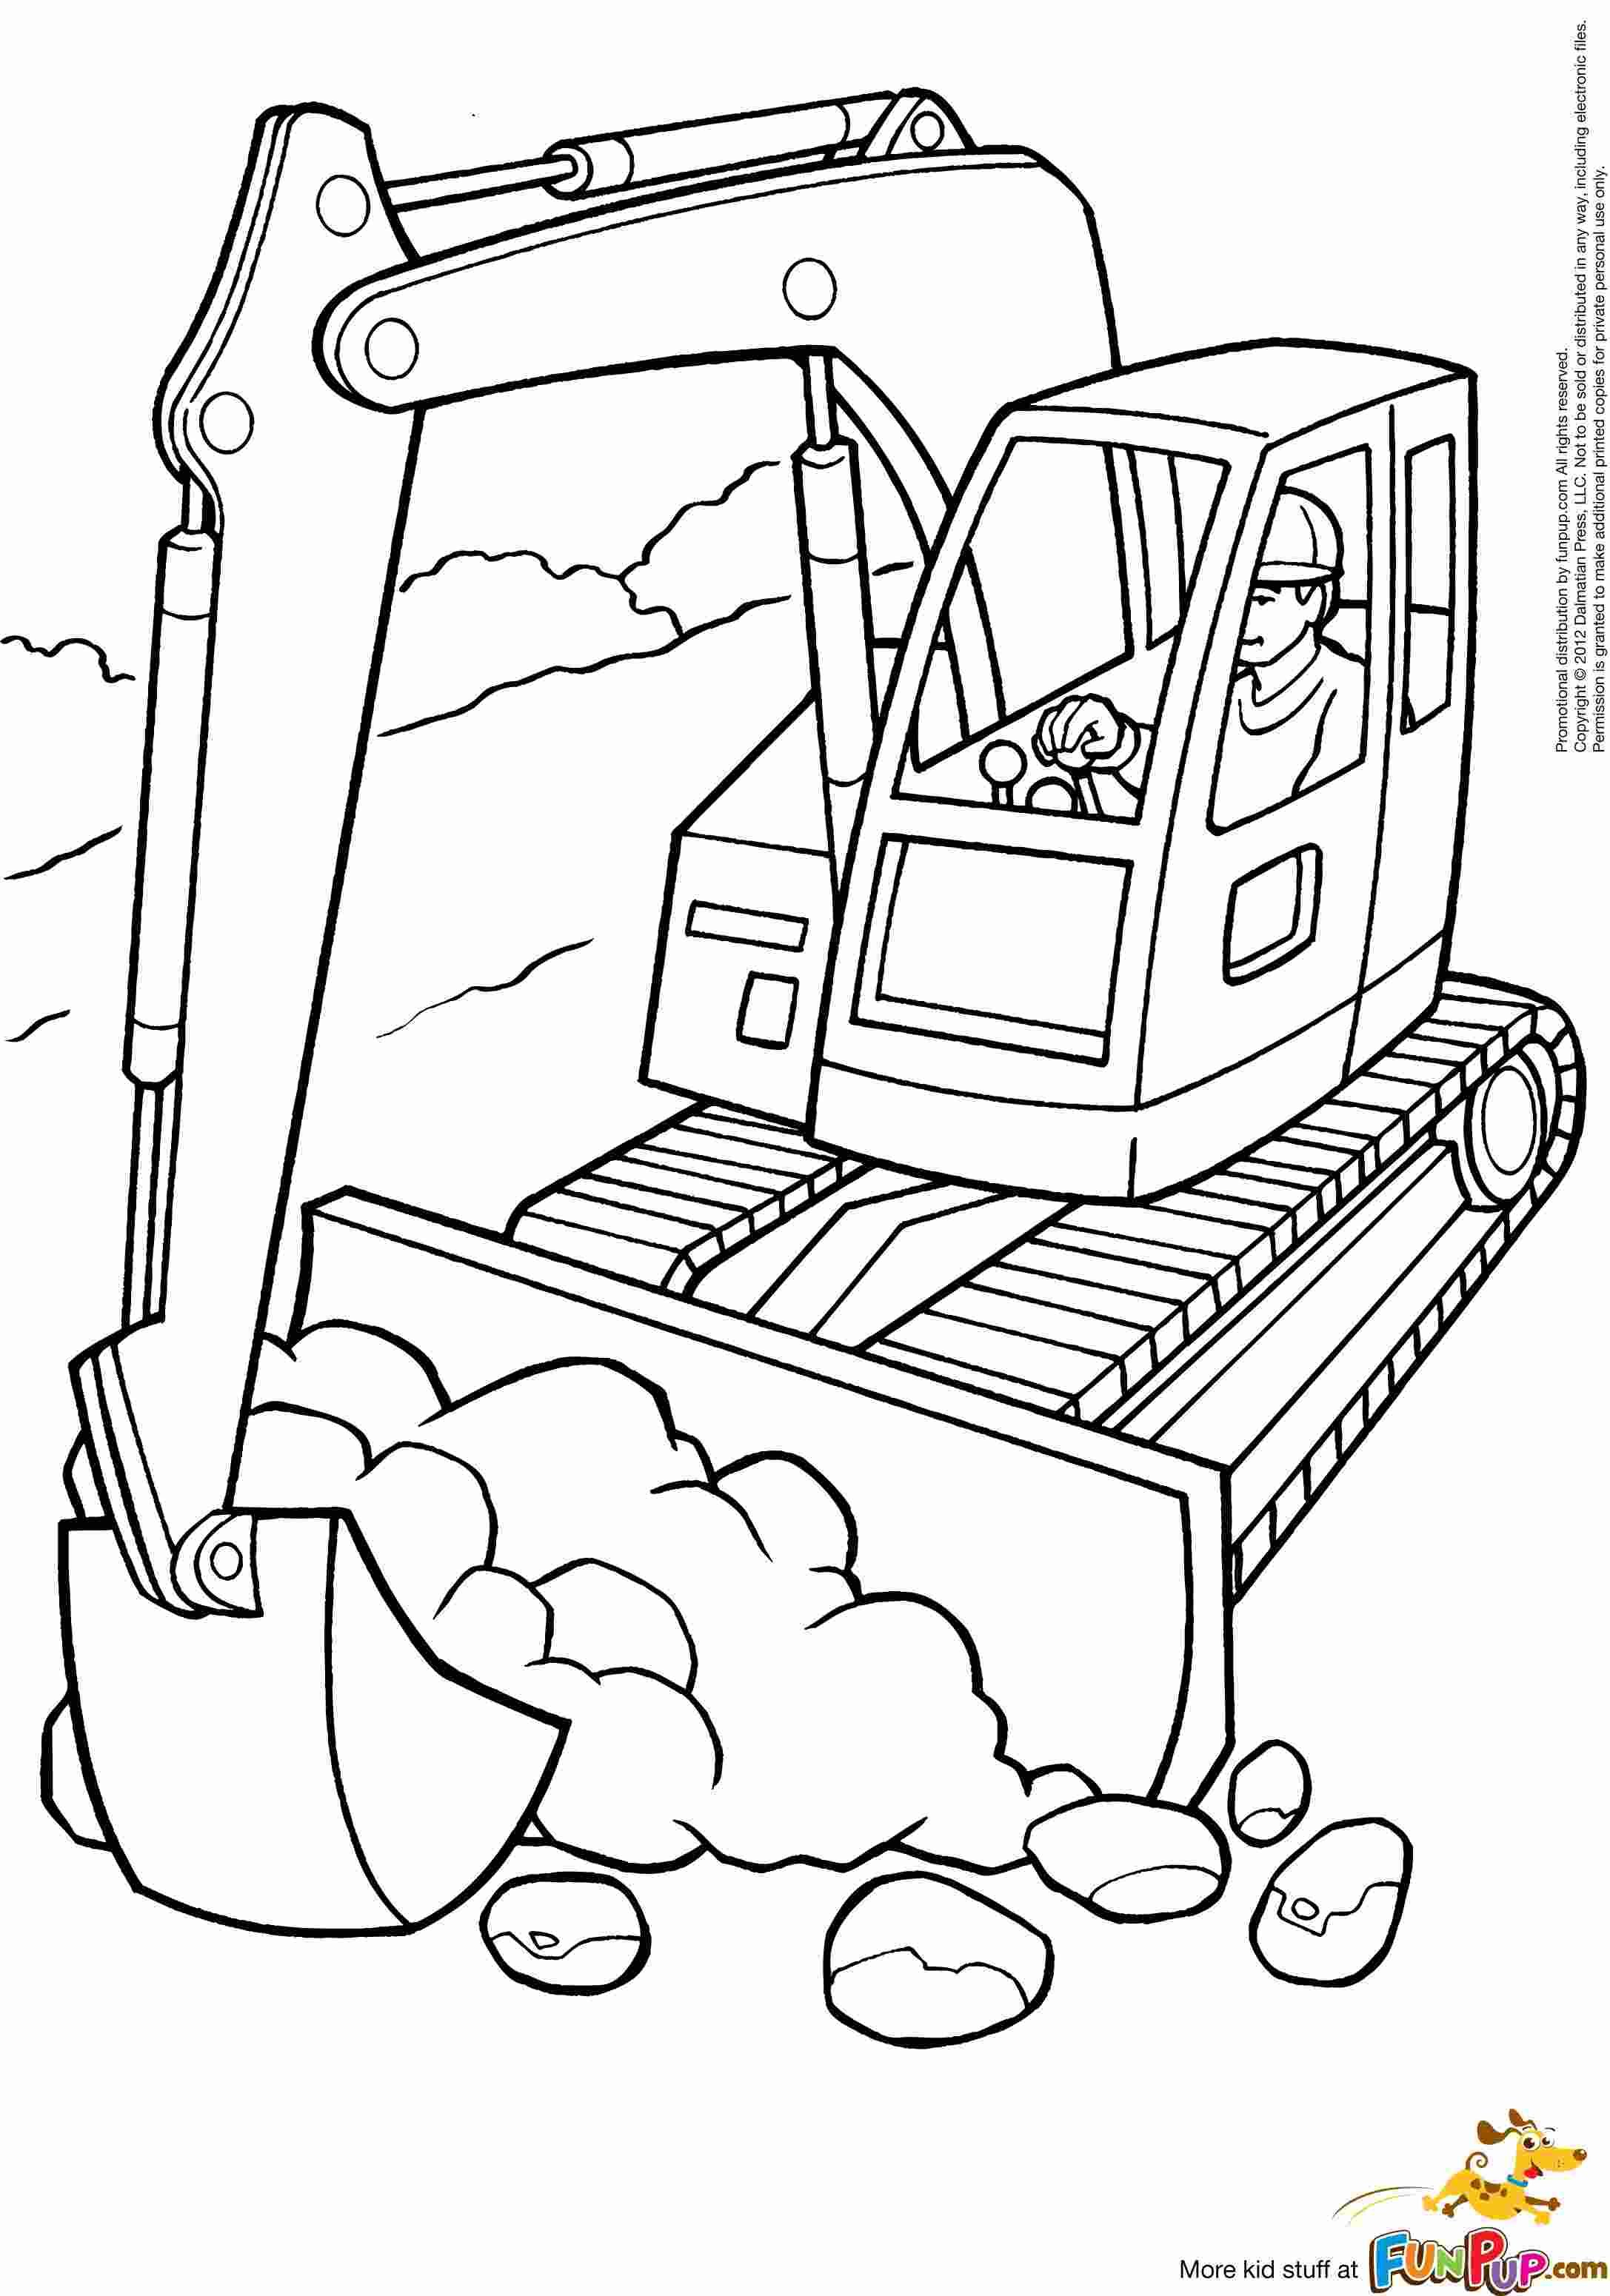 Excavator Coloring Pages Tractor Coloring Pages Truck Coloring Pages Kids Colouring Printables